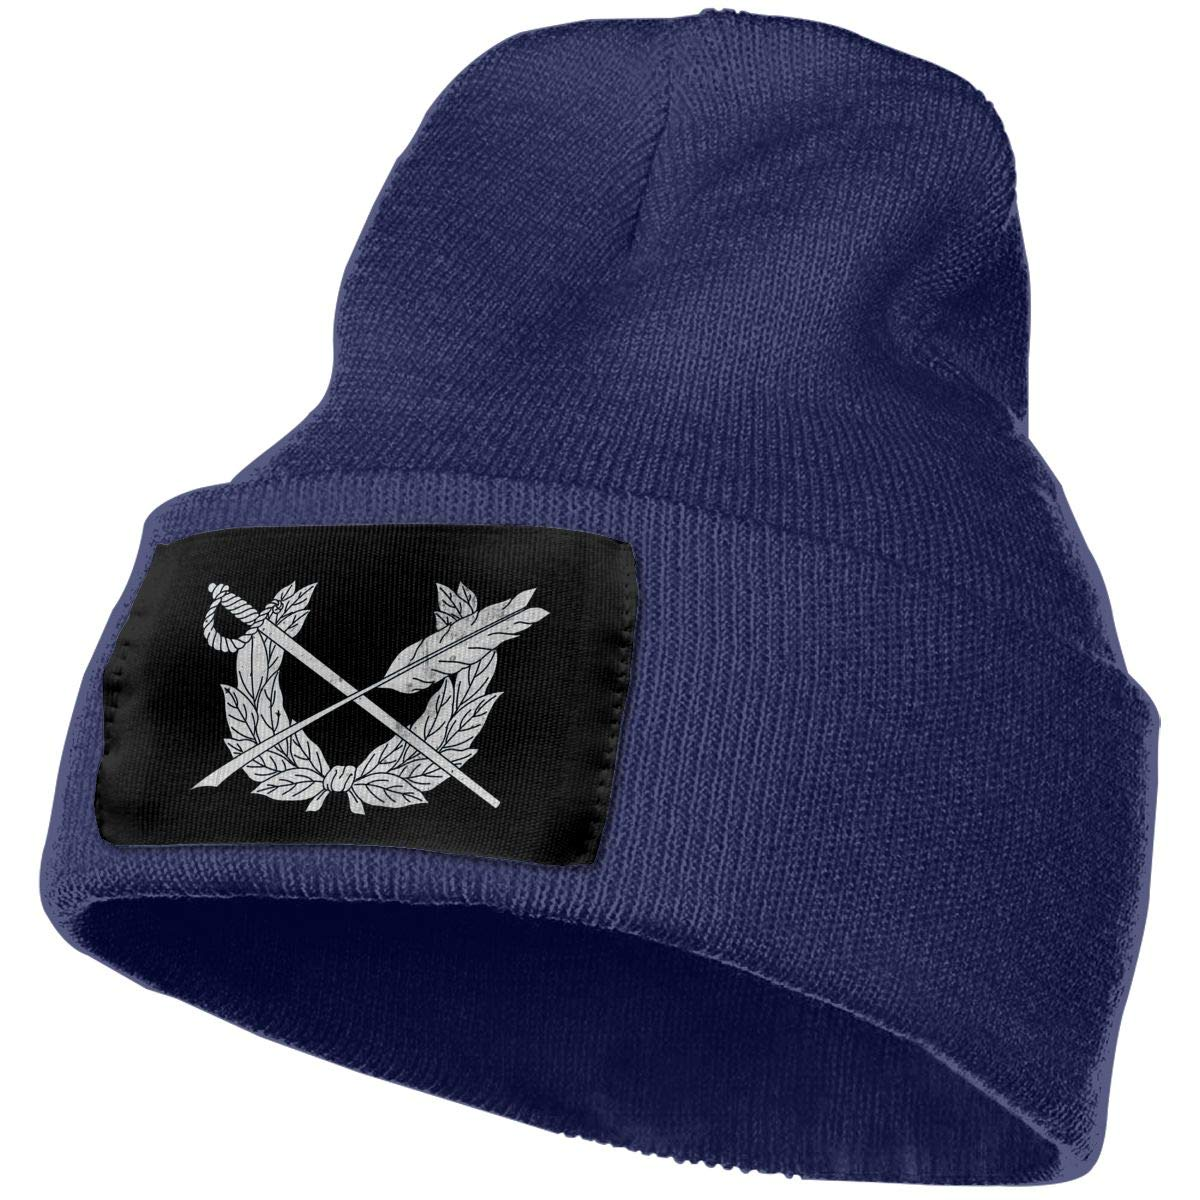 Us Army The Judge Advocate General Mens Beanie Cap Skull Cap Winter Warm Knitting Hats.